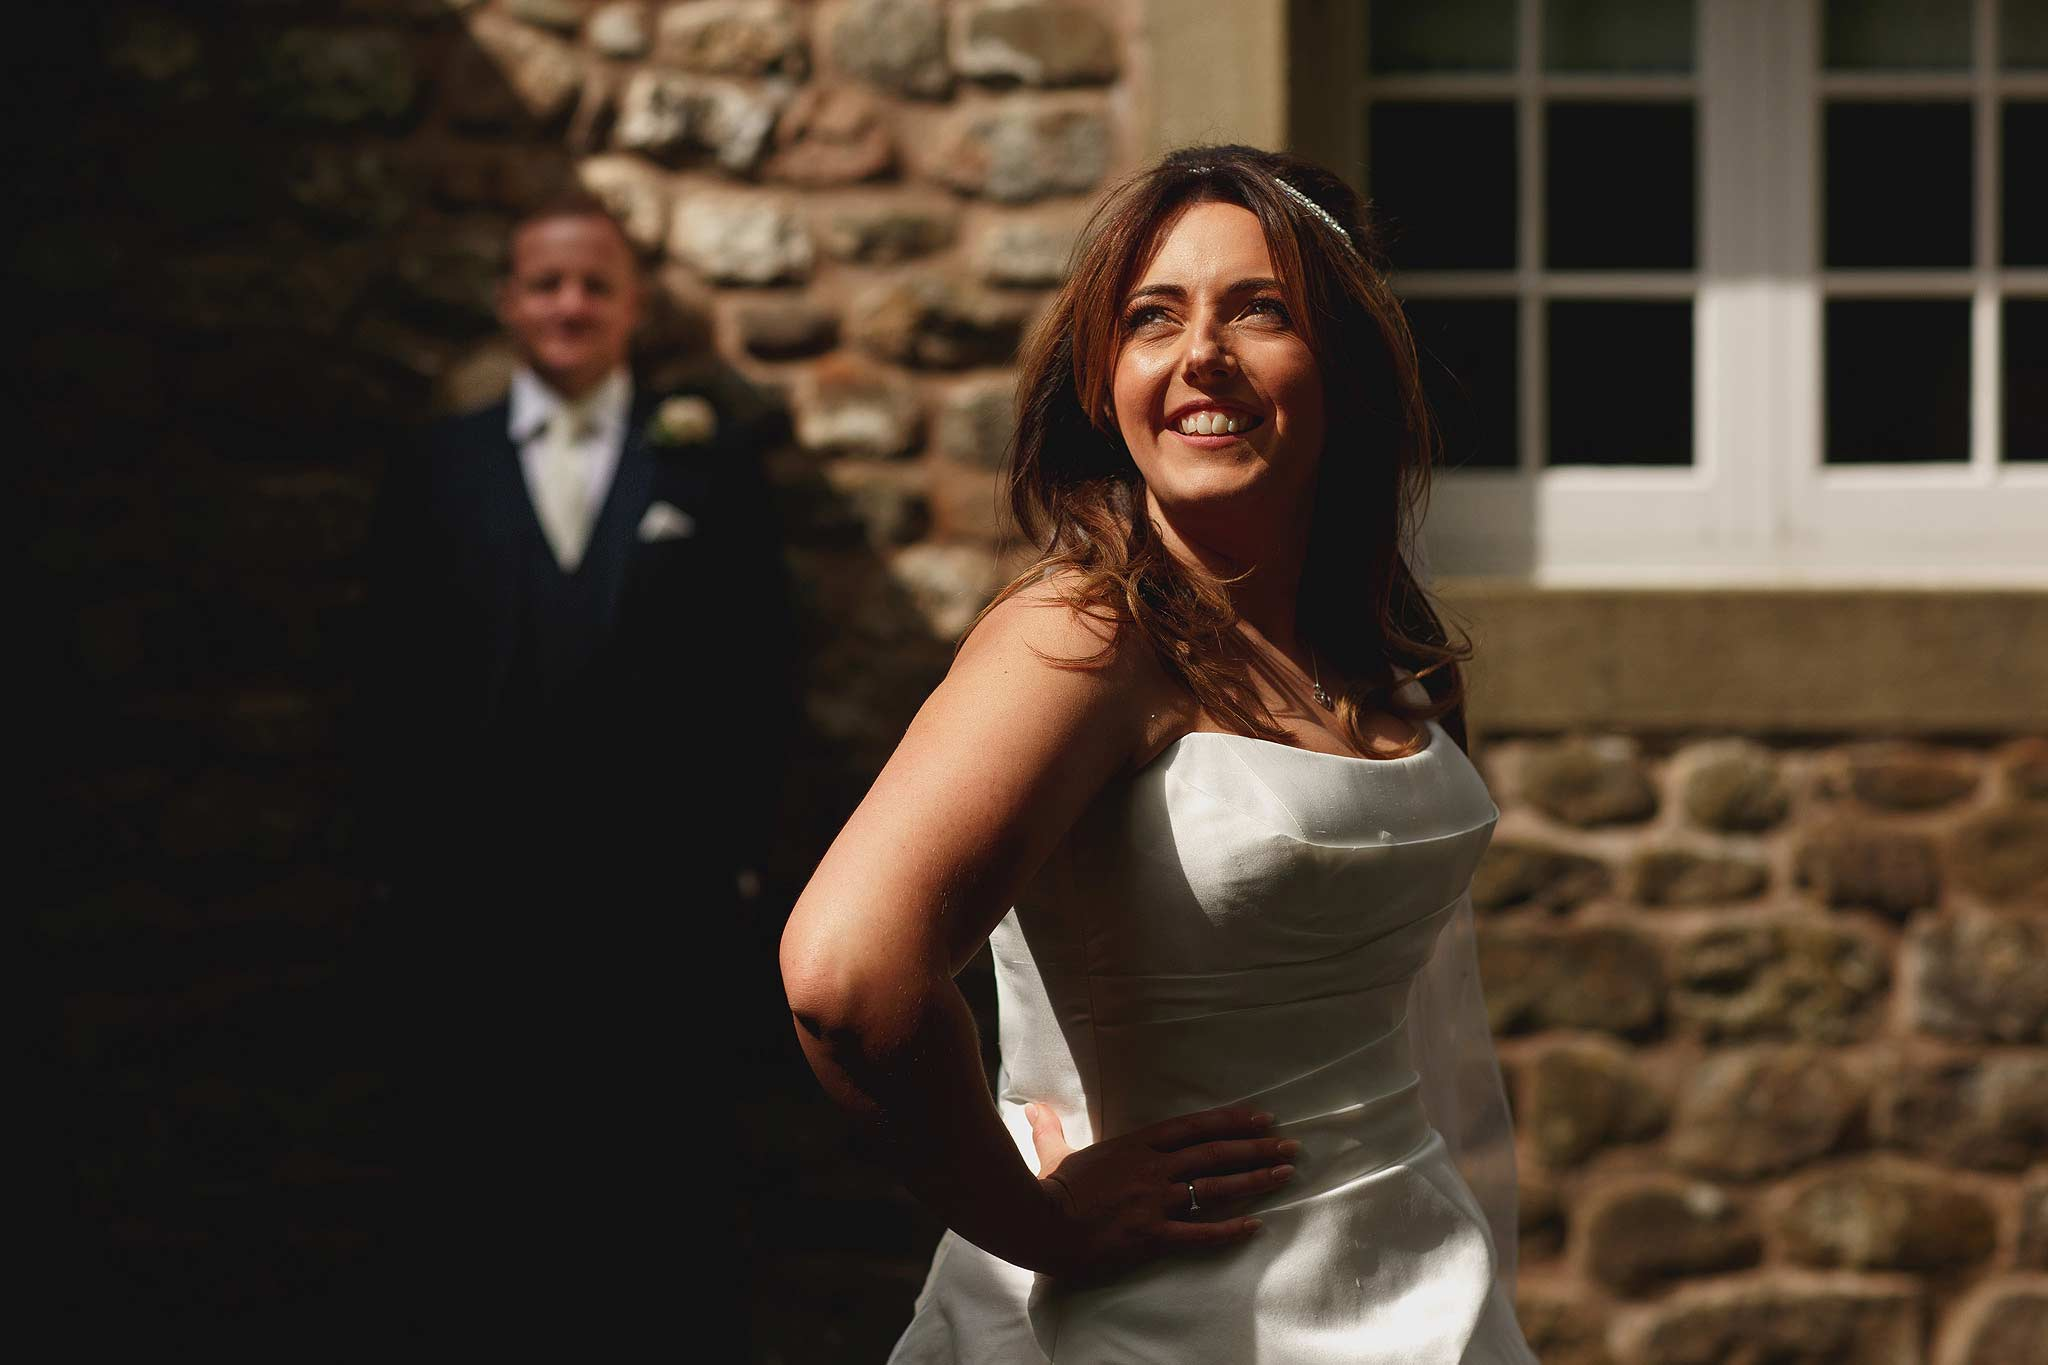 Creative Inn at Whitewell wedding photographs using harsh lighting.